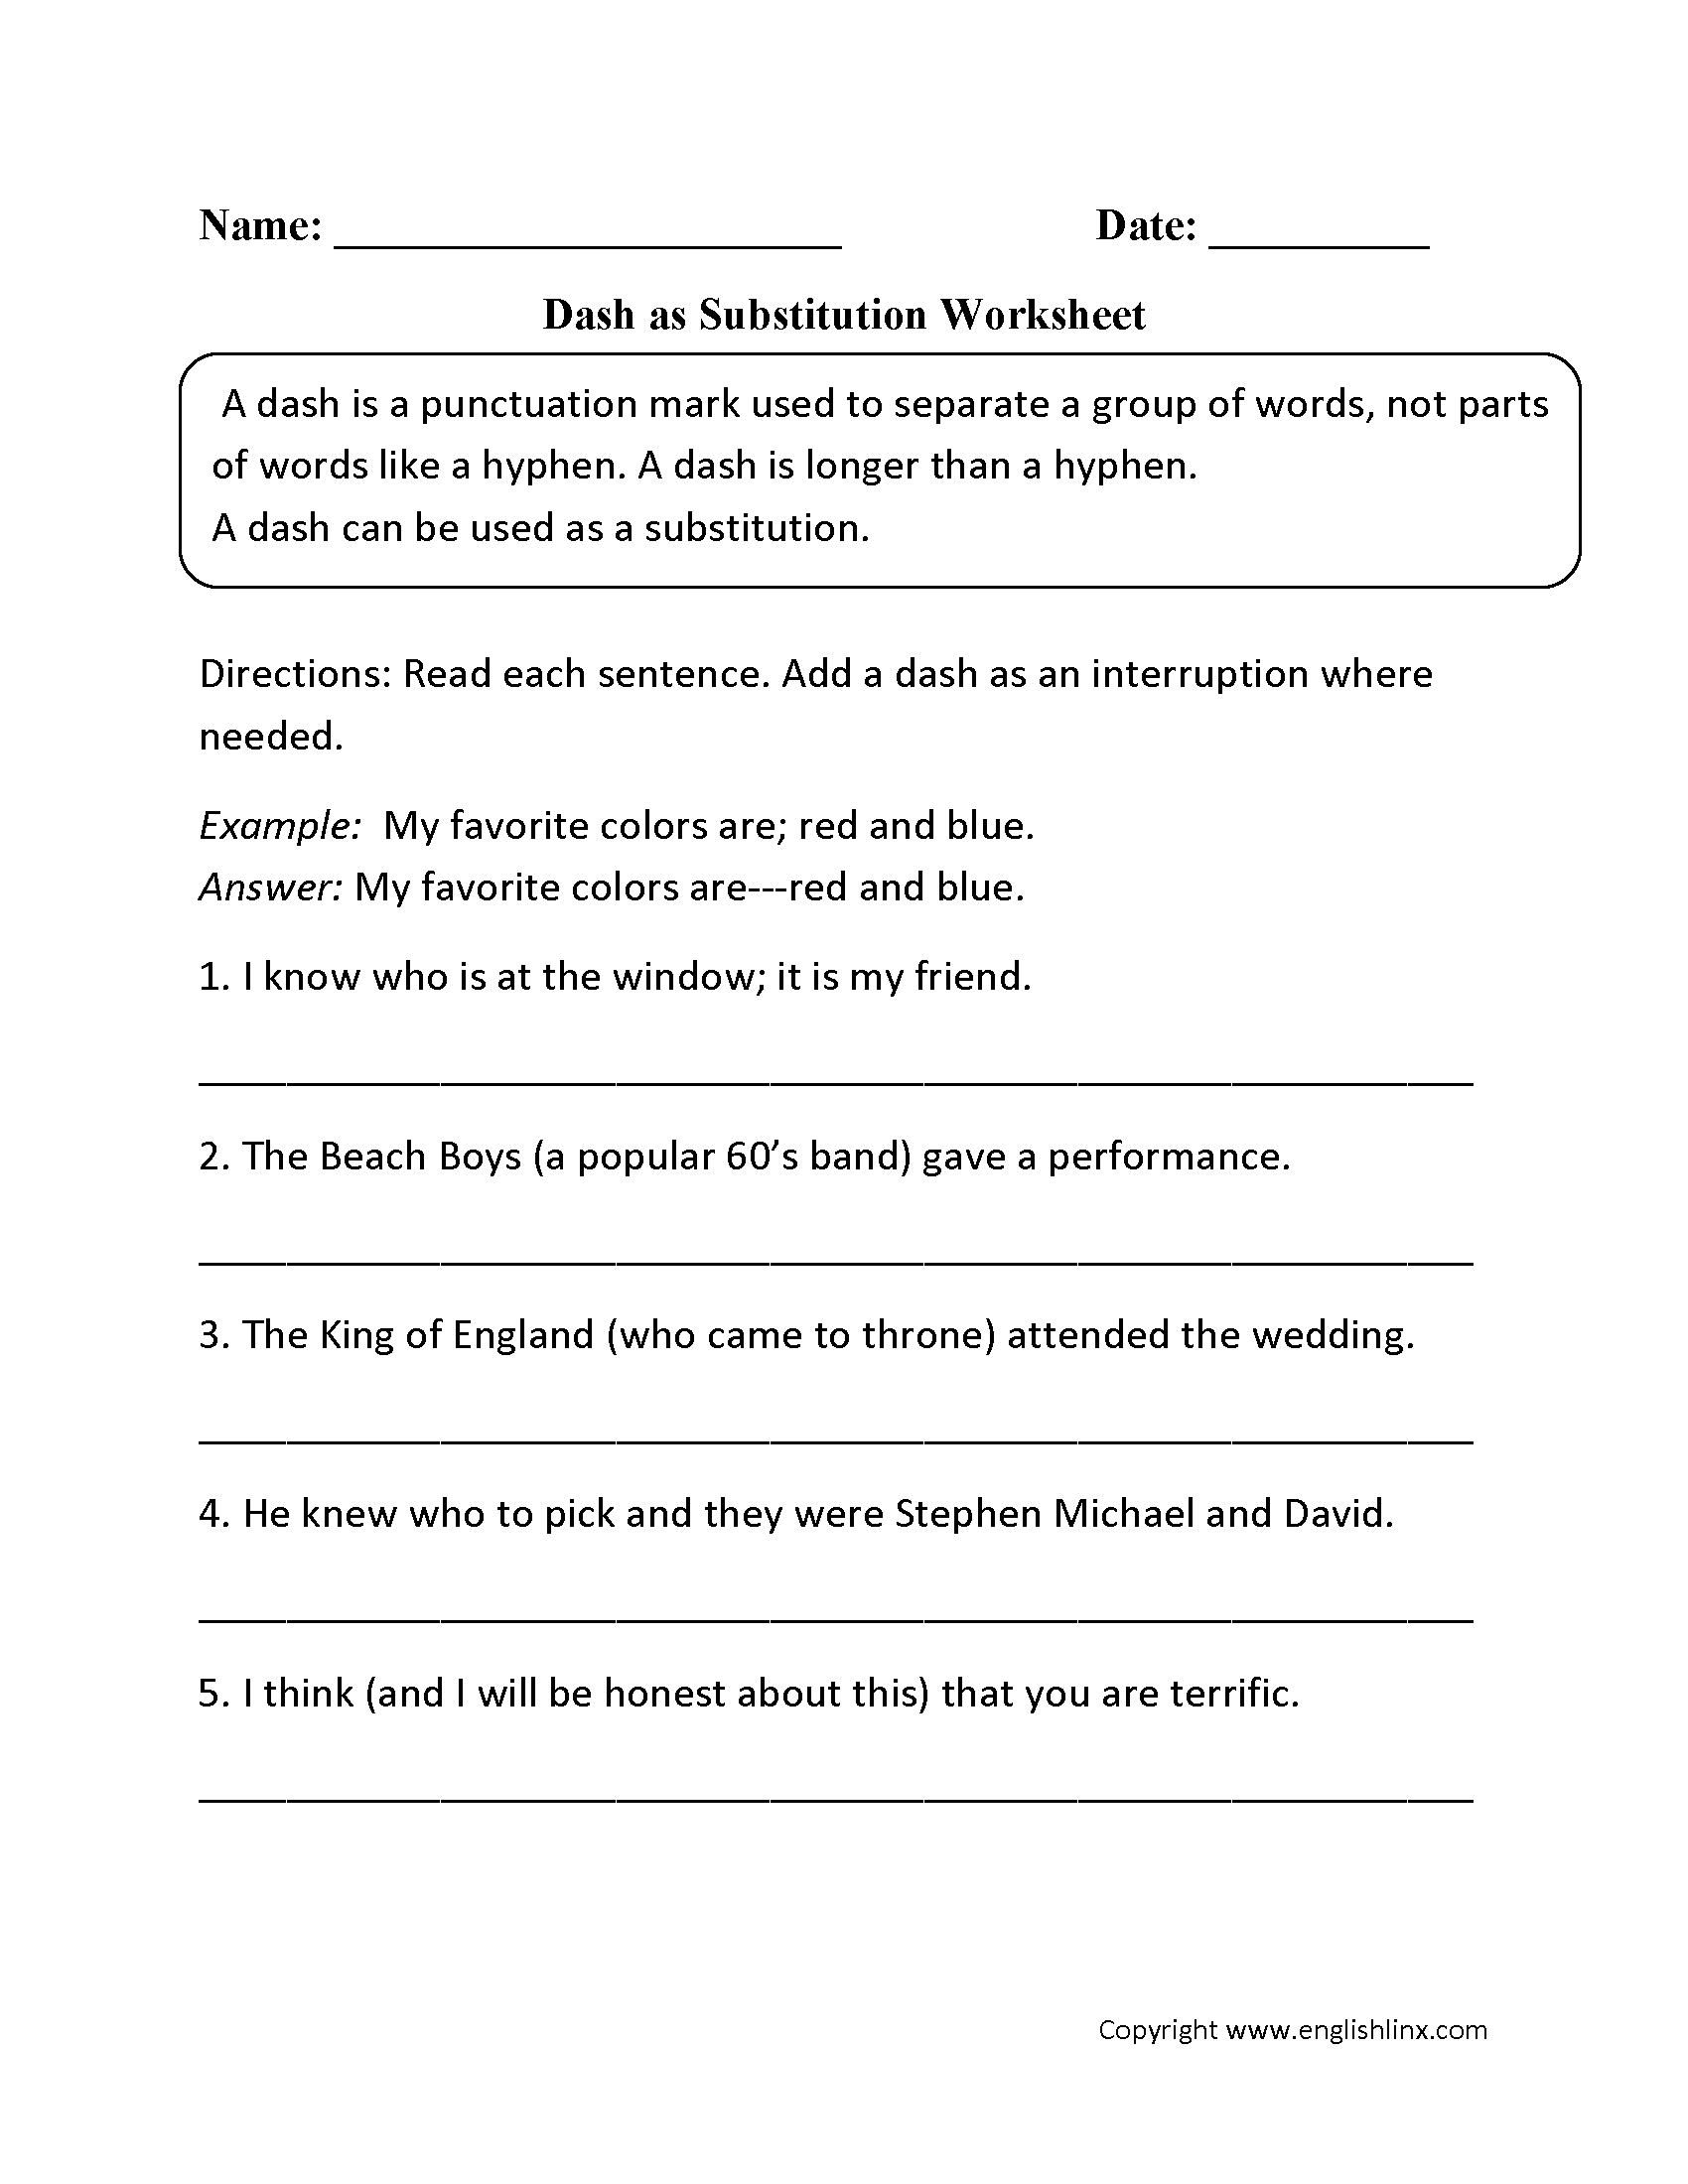 Worksheet Substitution Worksheet punctuation worksheets dash as substitution worksheet